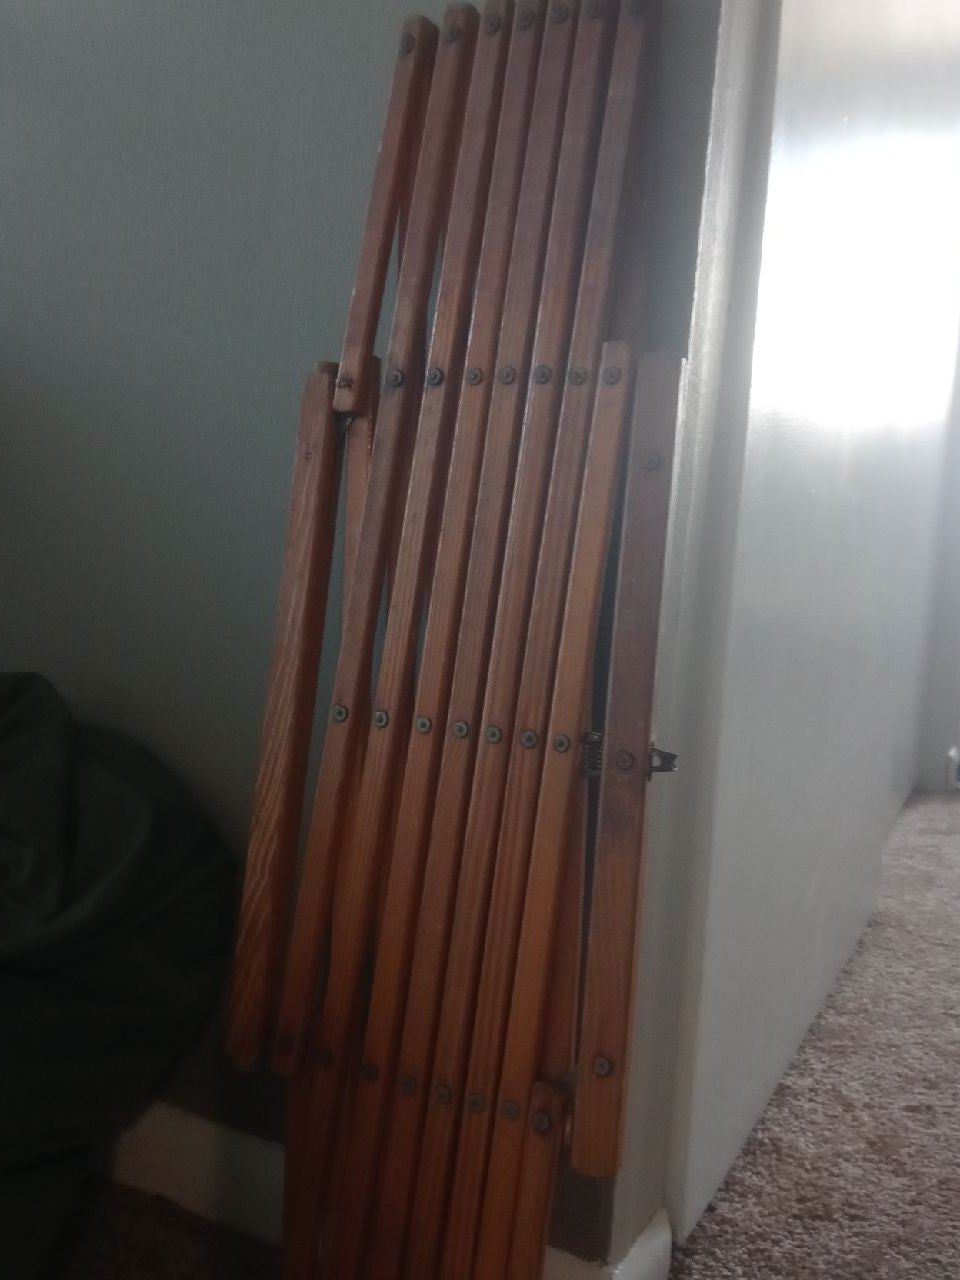 Baby or Puppy gate